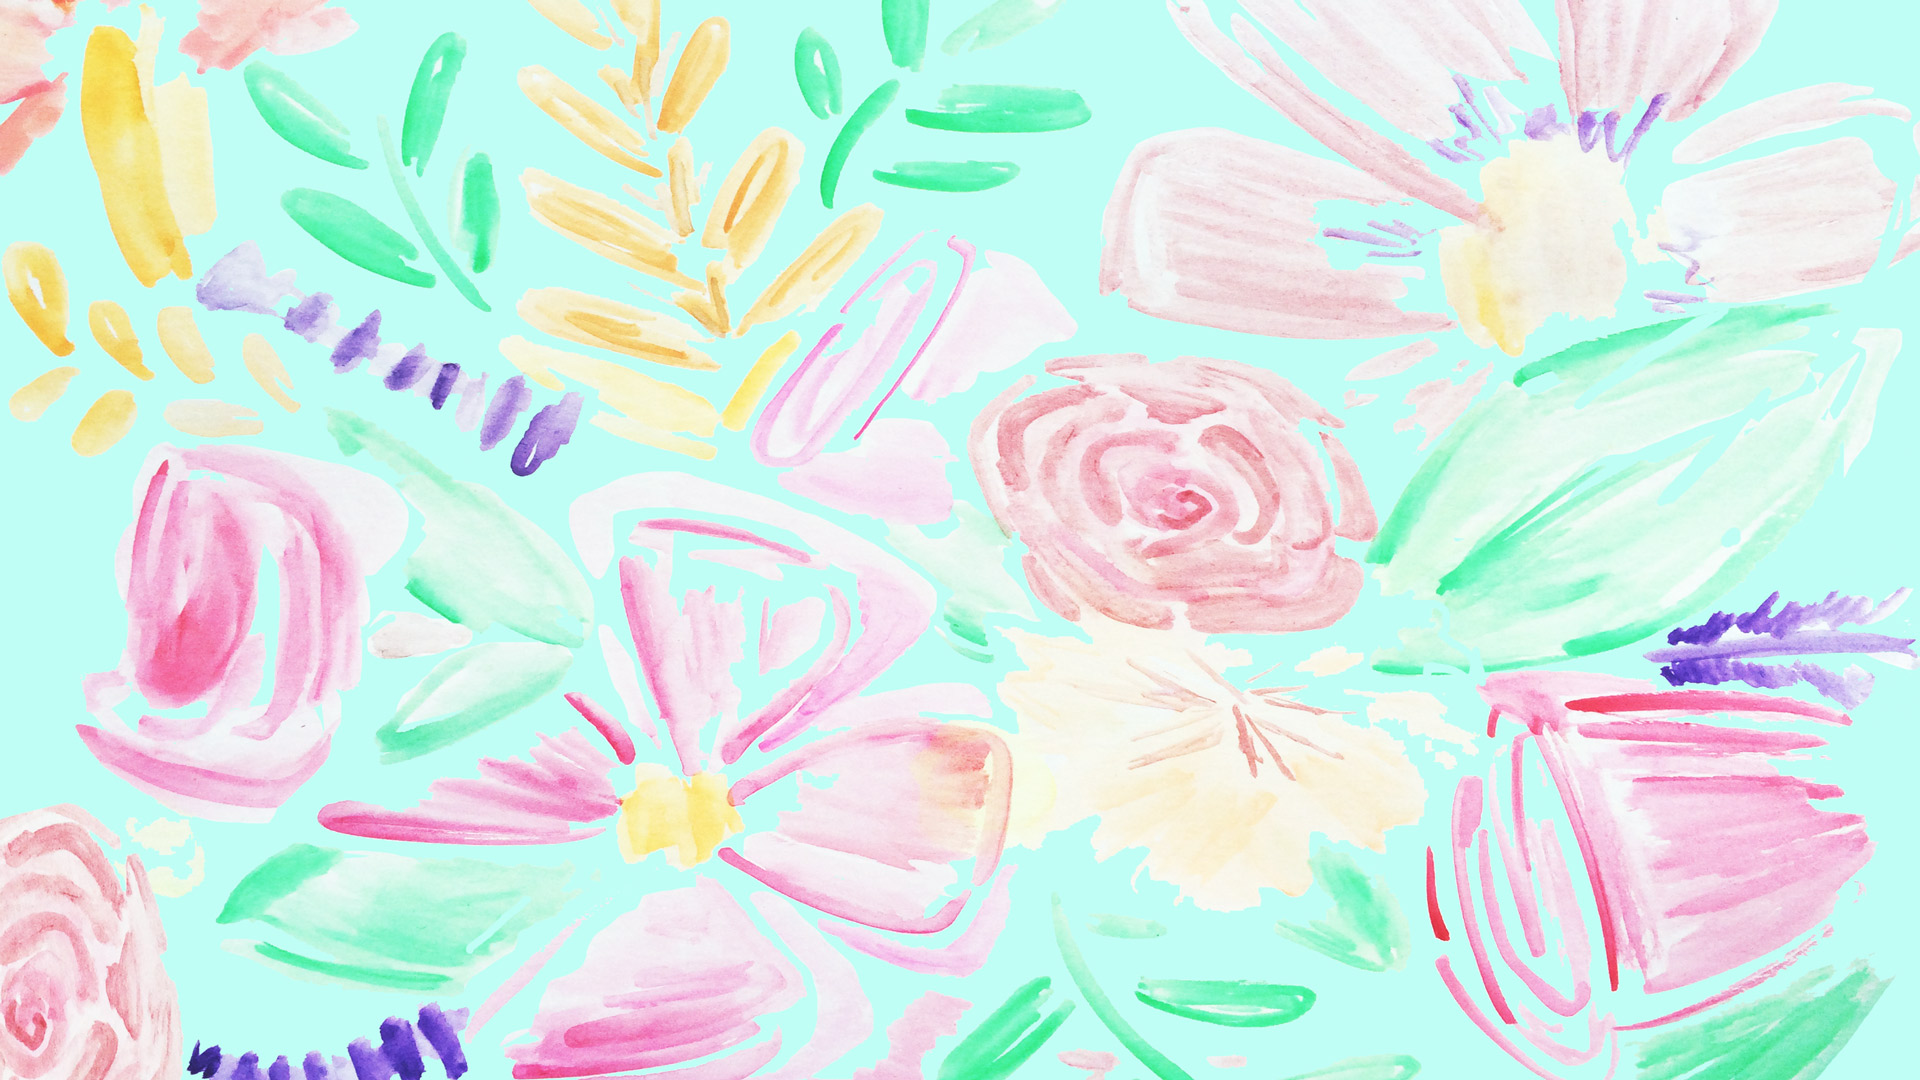 1920x1080 Desktop Watercolor Wallpaper Wallpaper.wiki